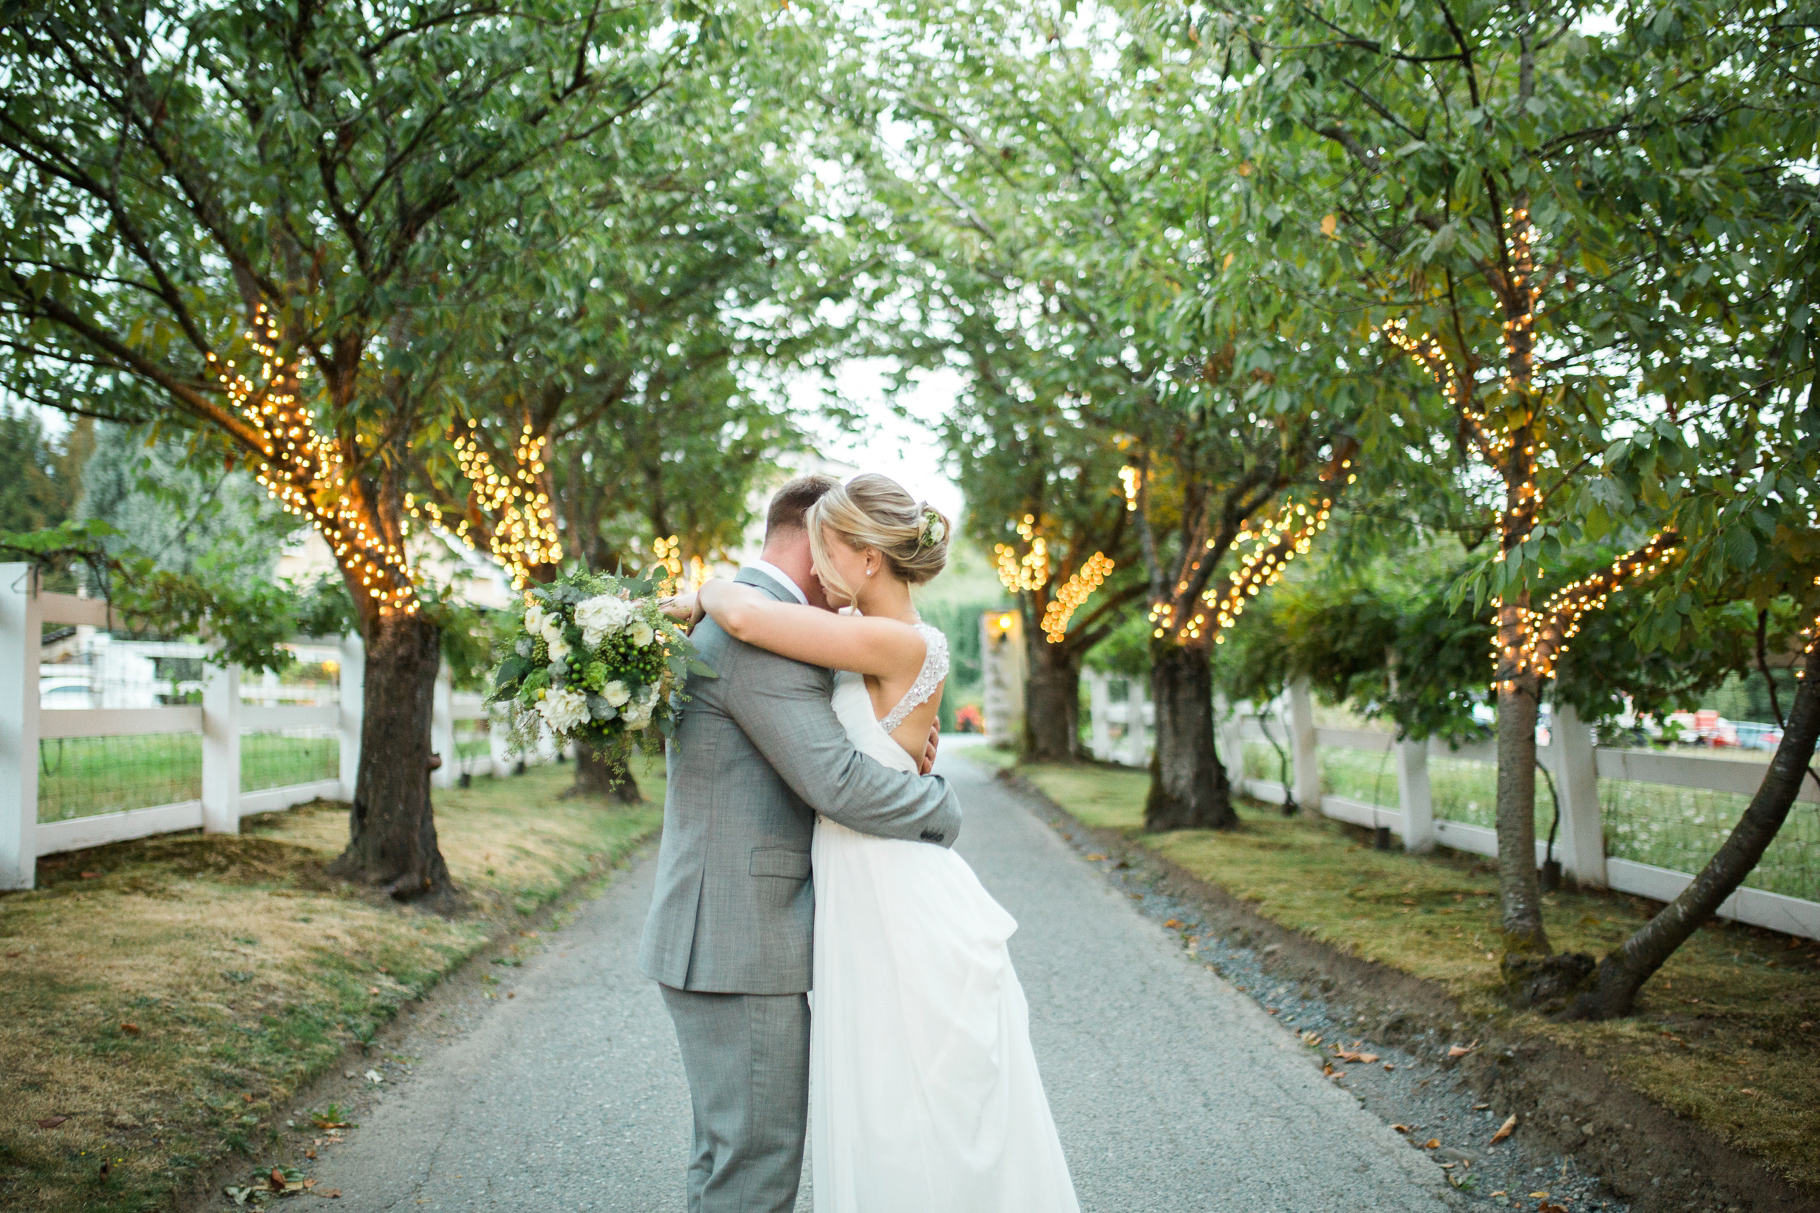 32-Woodinville-Bride-Groom-Washington-Winery-Delille-Cellars-Seattle-Wedding-Photographer